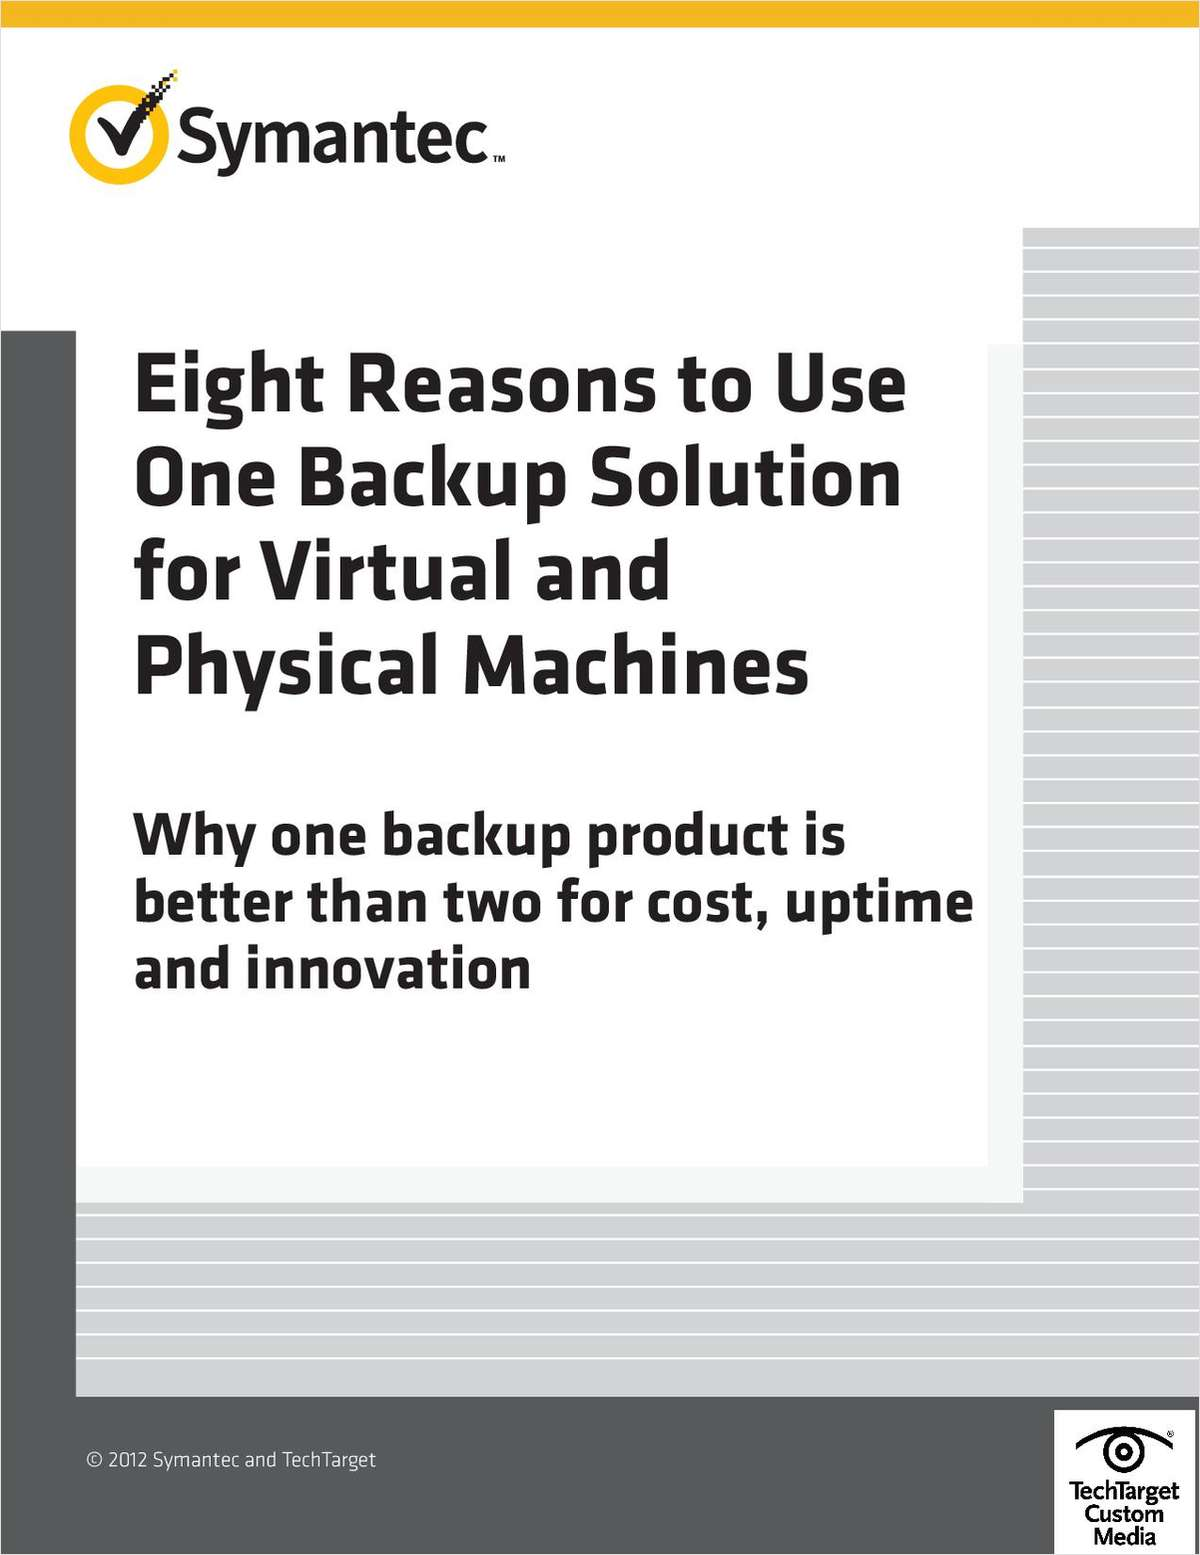 Eight Reasons to Use One Backup Solution for Virtual and Physical Machines